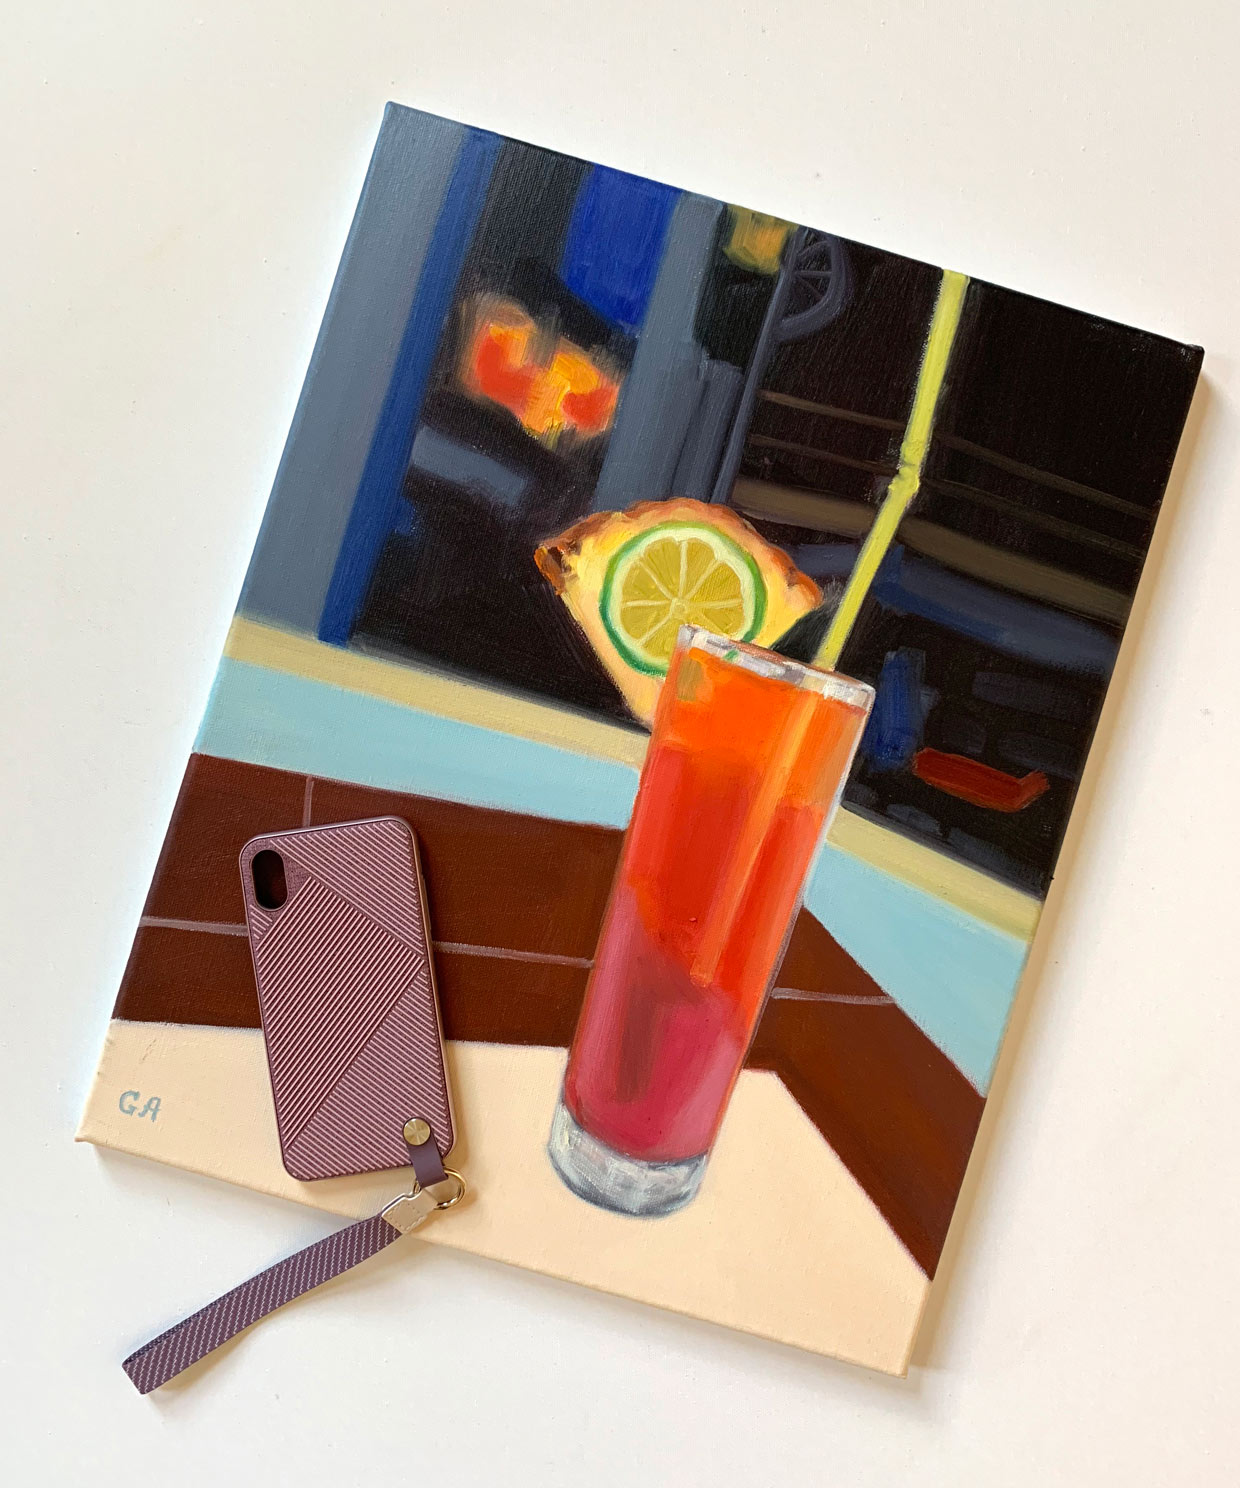 IPhone-XS-Max-Moshi-Altra-Case-Strap-Giselle-Ayupova-Painting-Tropical-Drink.jpg